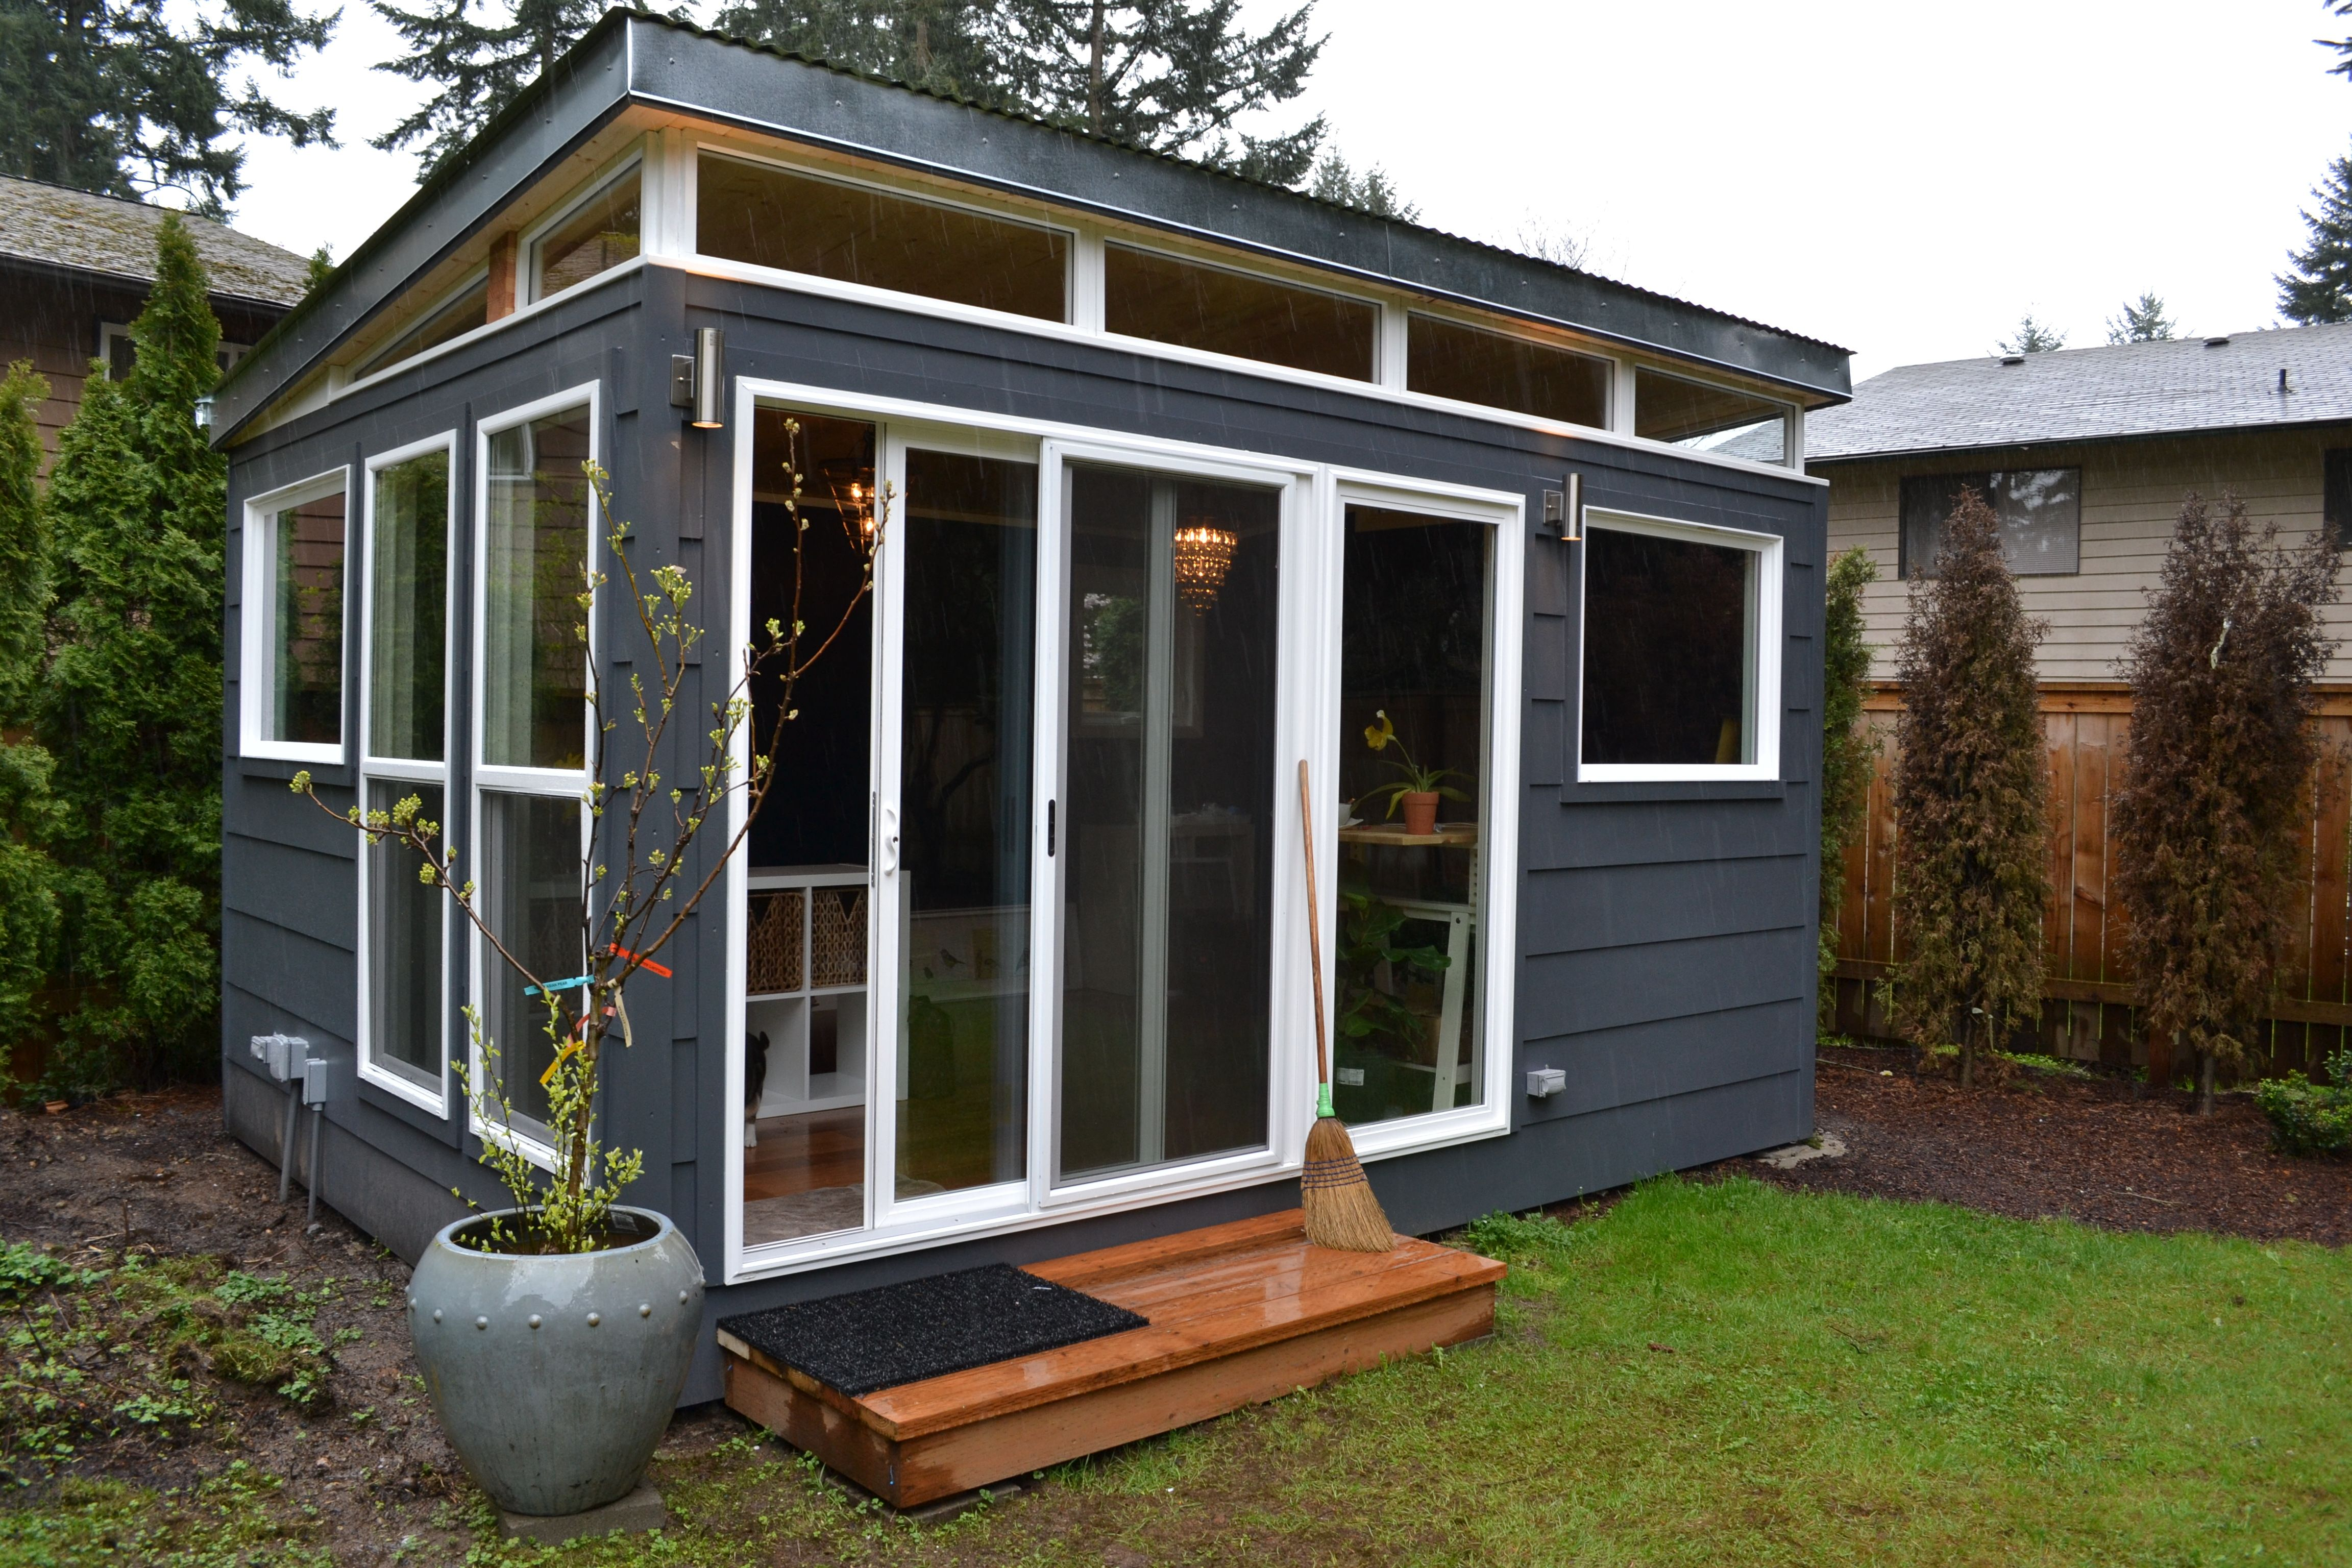 Etonnant #Modern Shed Home Office With #deepspace Paint From #BenjaminMoore